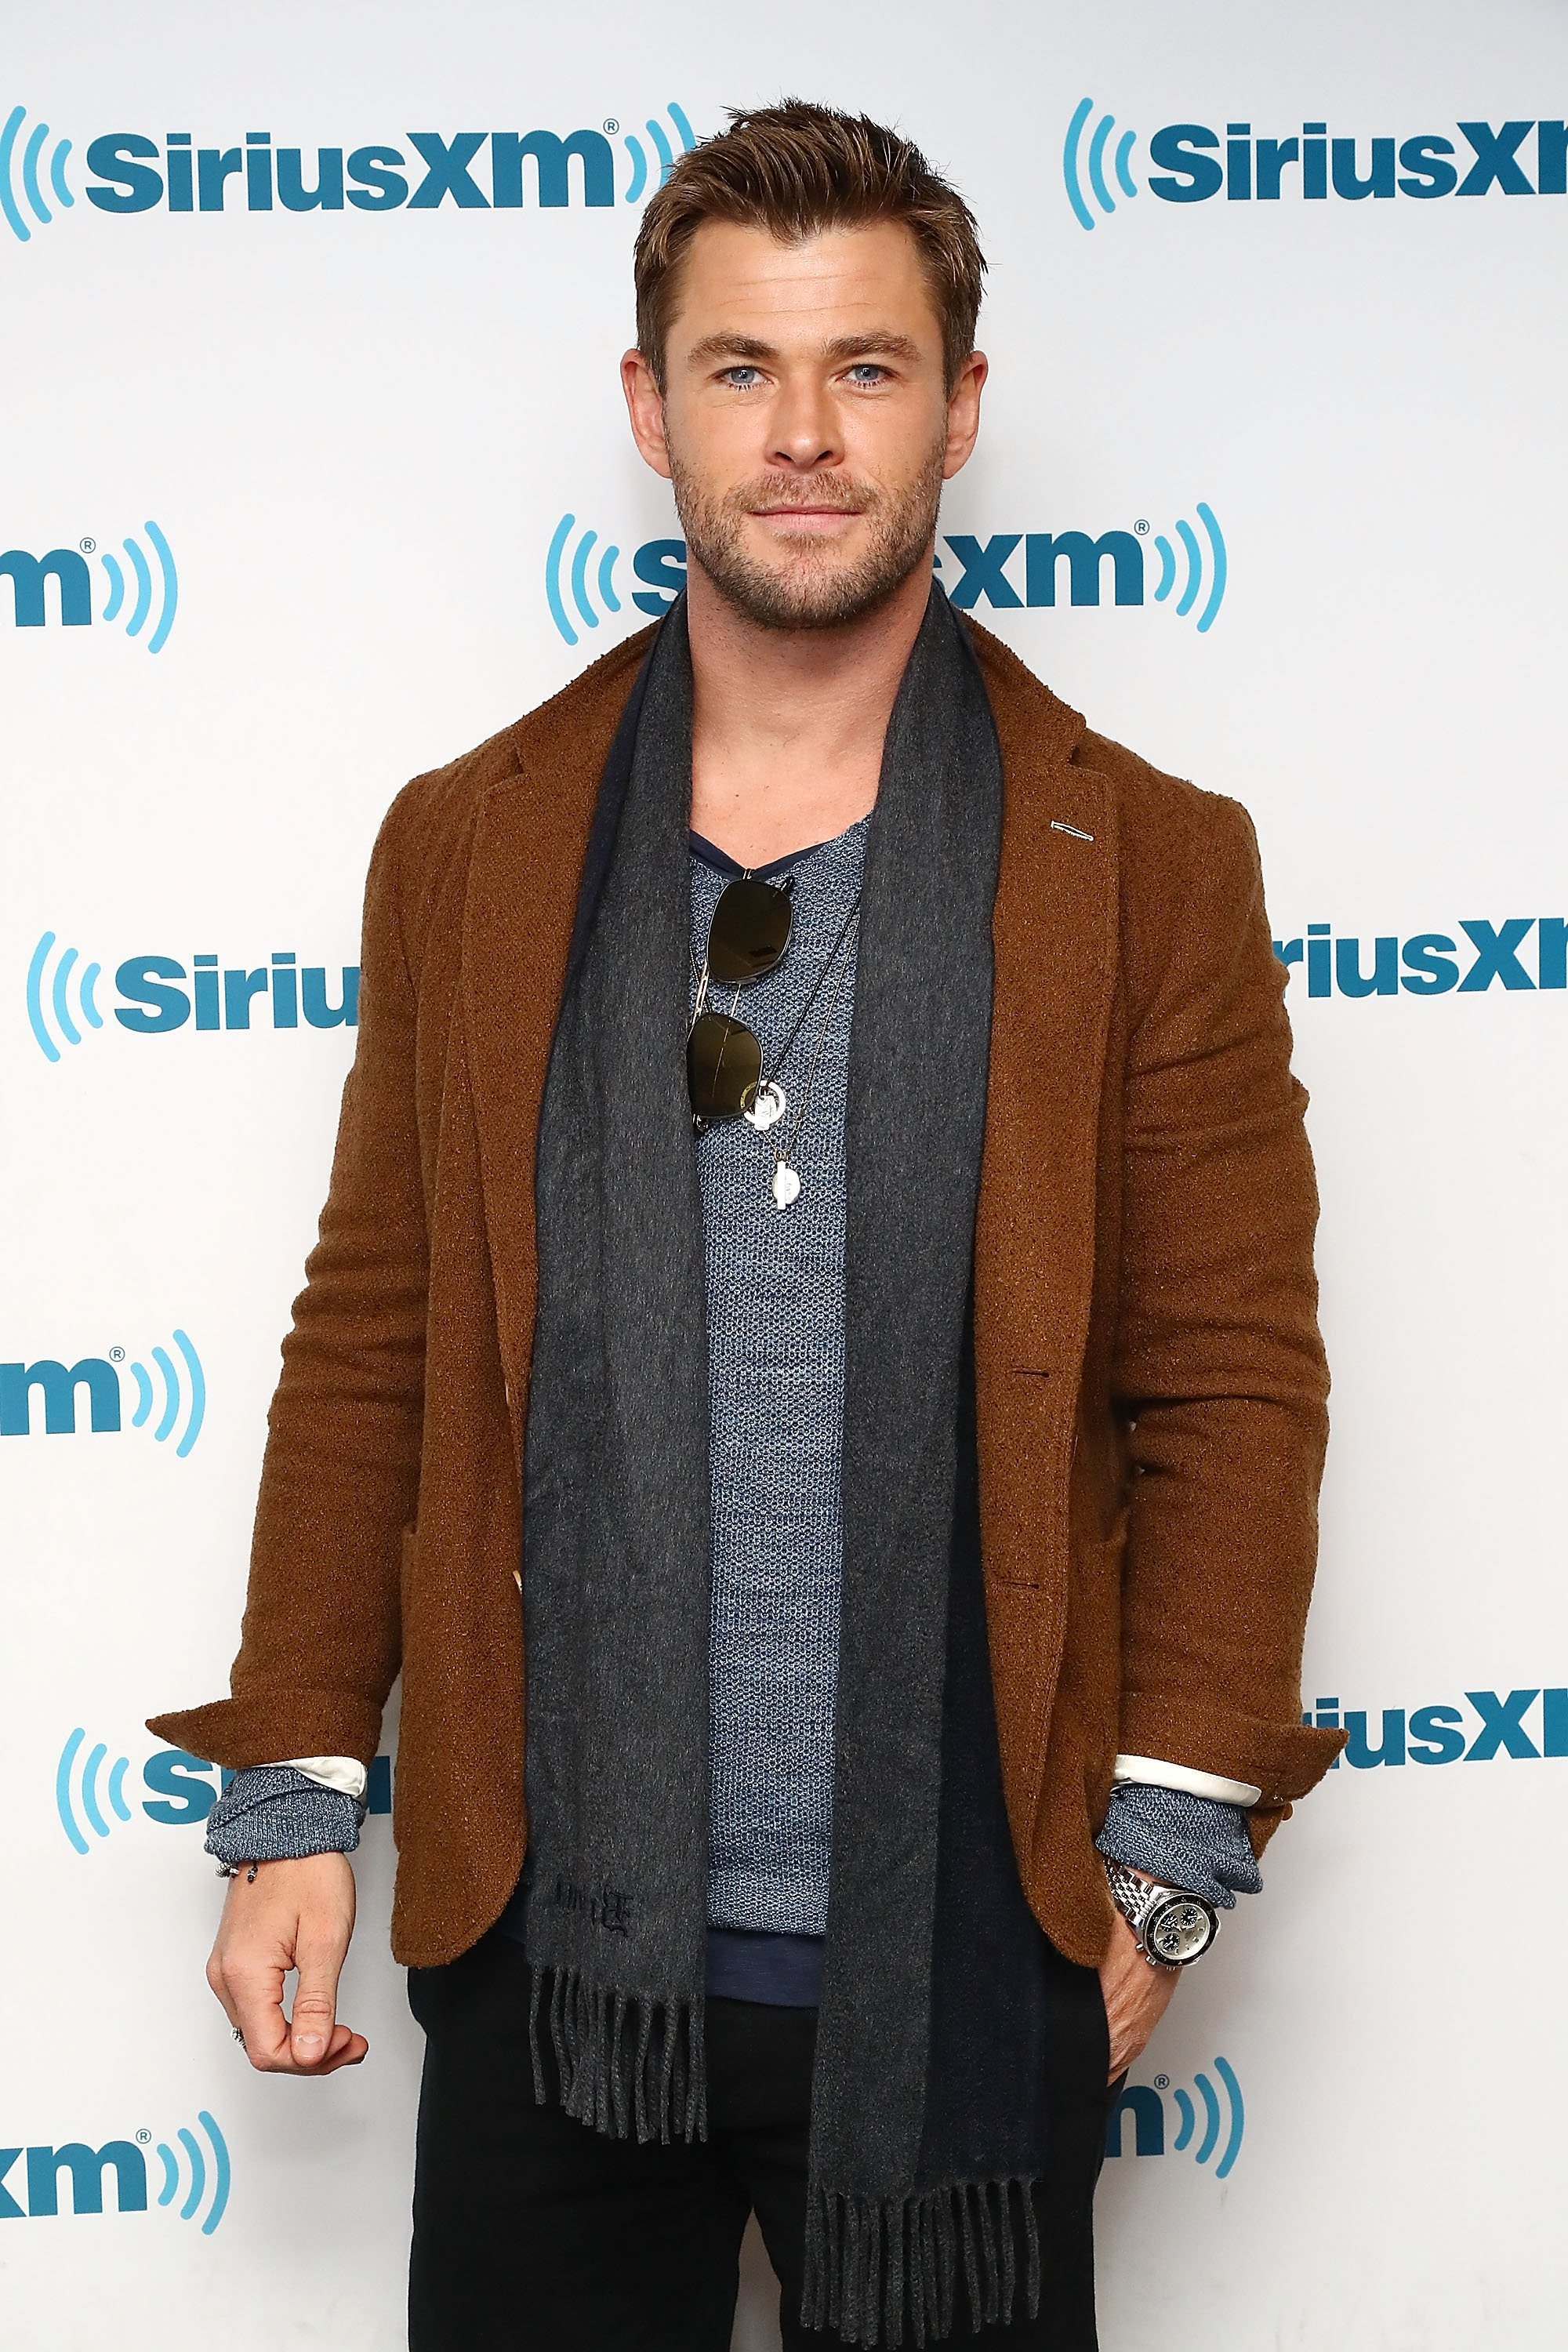 Chris Hemsworth visits the SiriusXM studios on January 16, 2018 in New York City | Photo: Getty Images